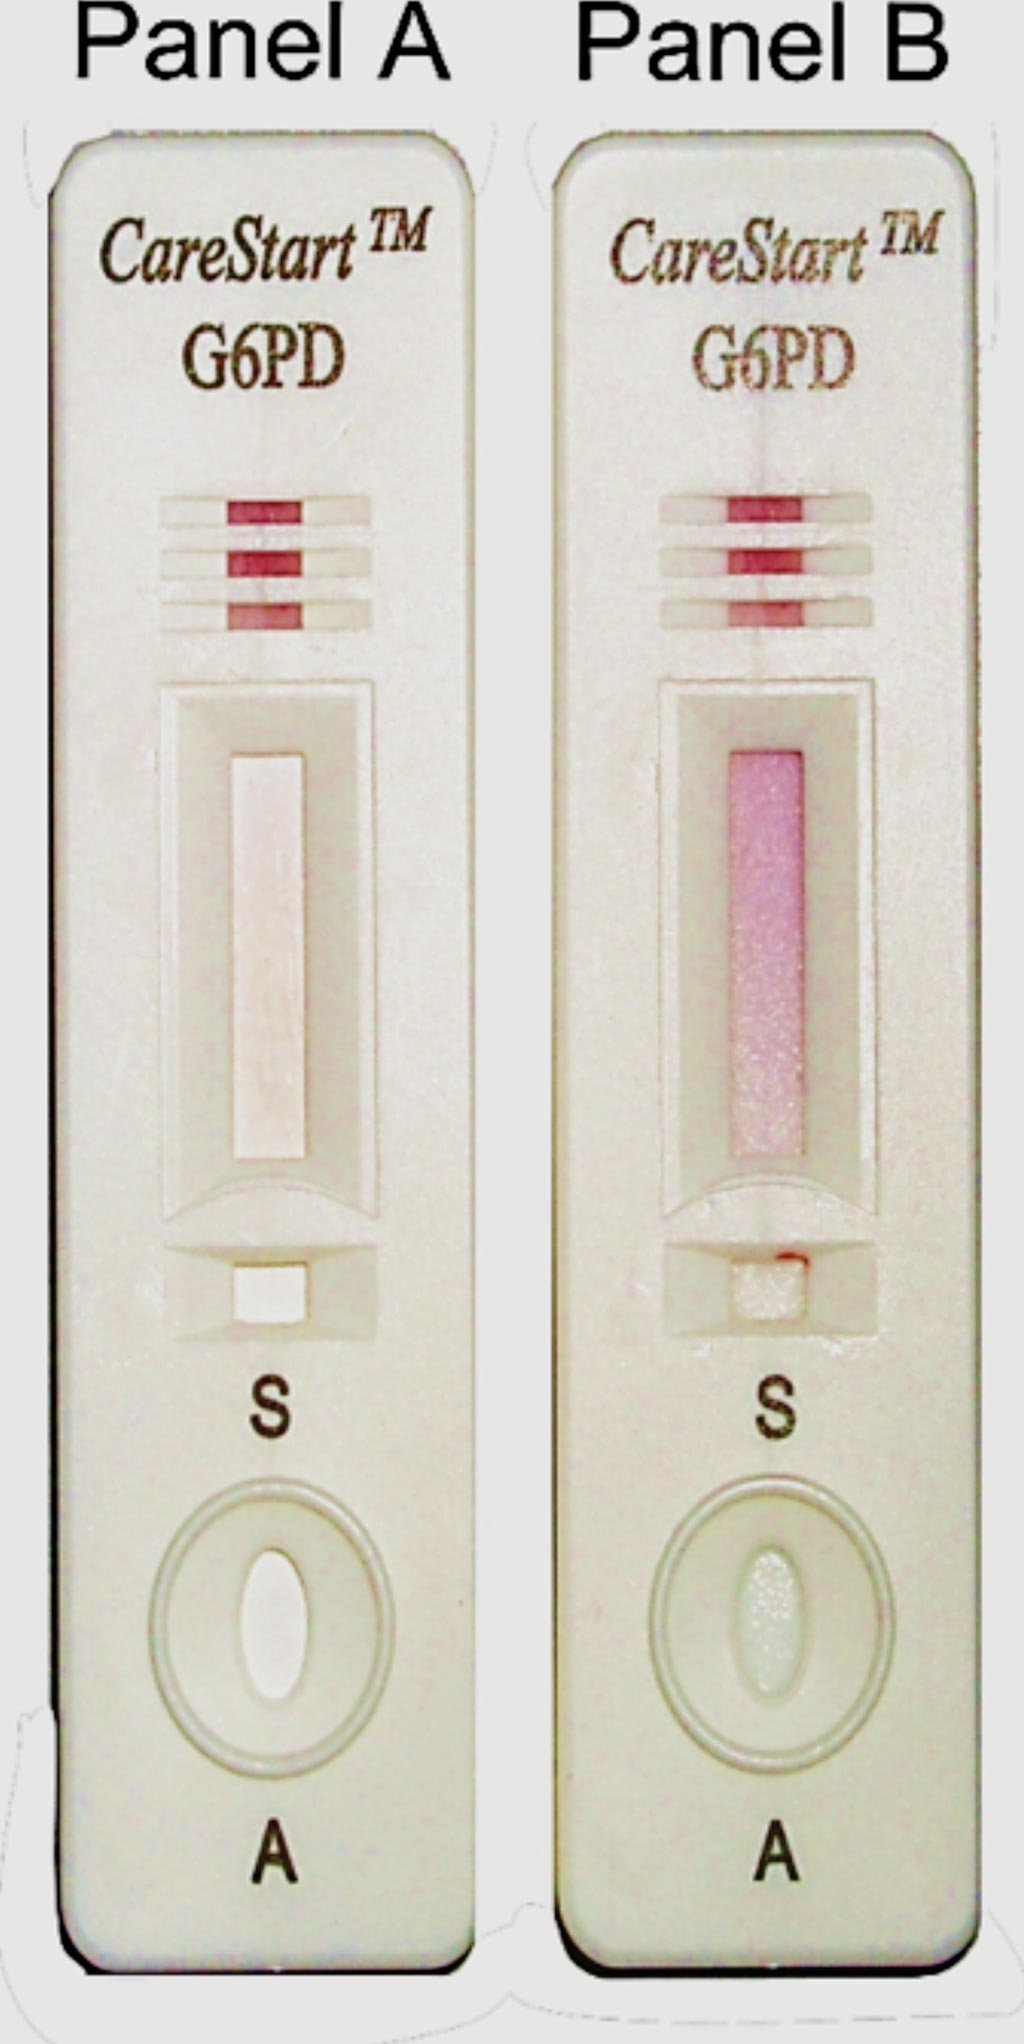 Image: The qualitative point-of-care test CareStart G6PD RDT is a visual screening test that identifies G6PD deficient patients using whole blood sample. Panel A, no color change for sample with deficient G6PD enzymatic activity; Panel B, distinct purple color for sample with normal G6PD enzymatic activity (Photo courtesy of Access Bio).